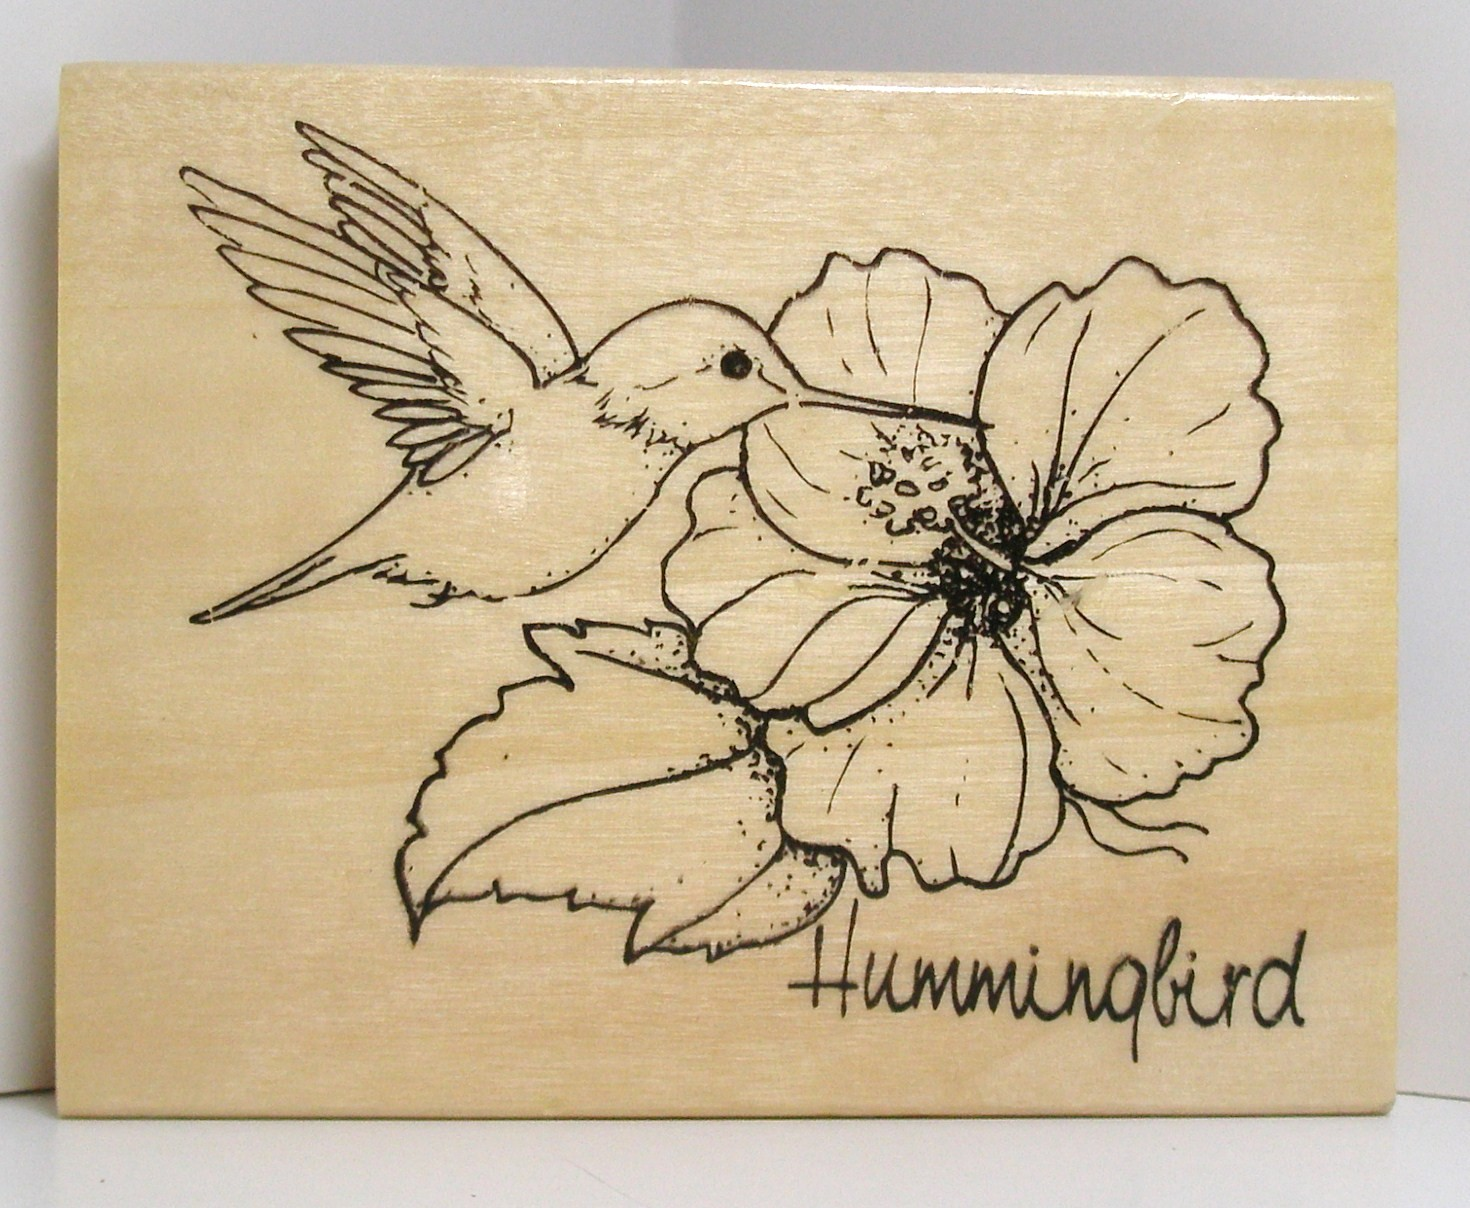 Drawn hummingbird hibiscus HIBISCUS flowers Stamp with Rubber